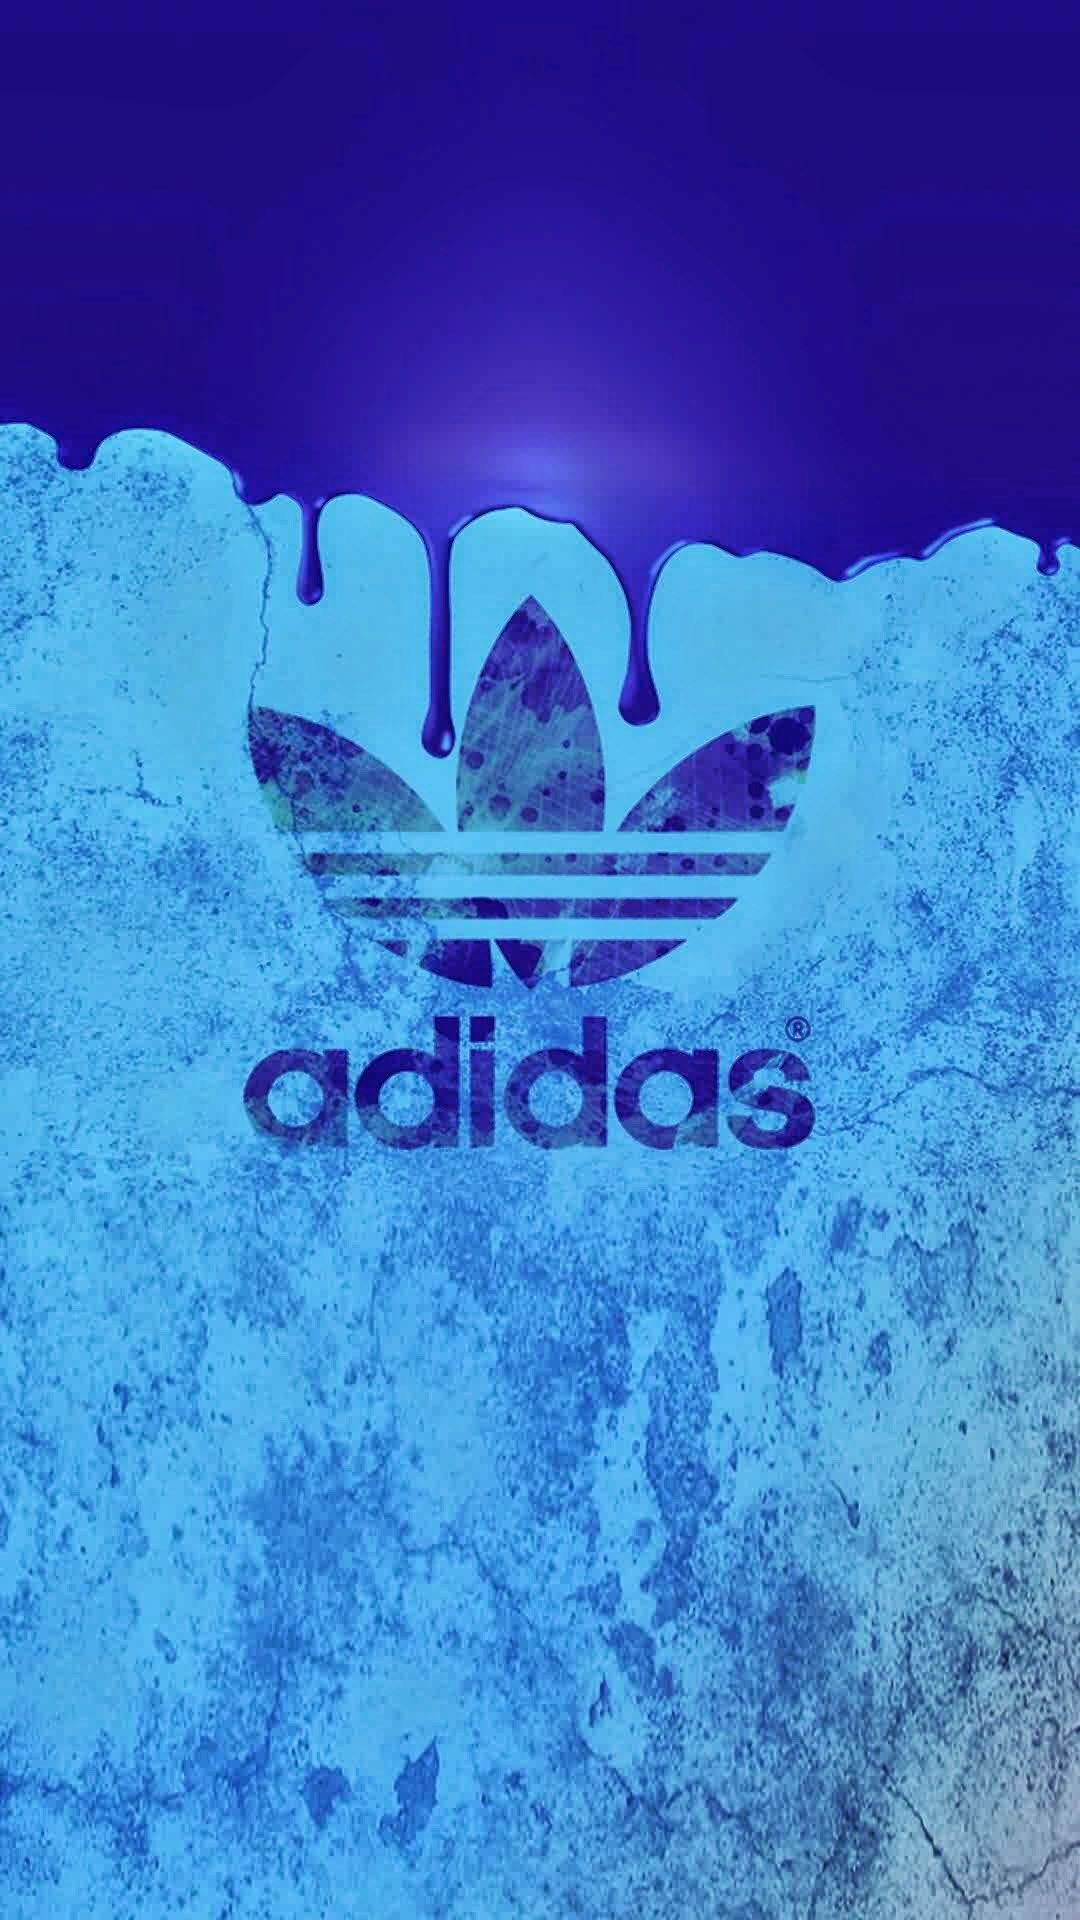 Pin by Cata_1234 on Adidas Pinterest Adidas, Wallpaper